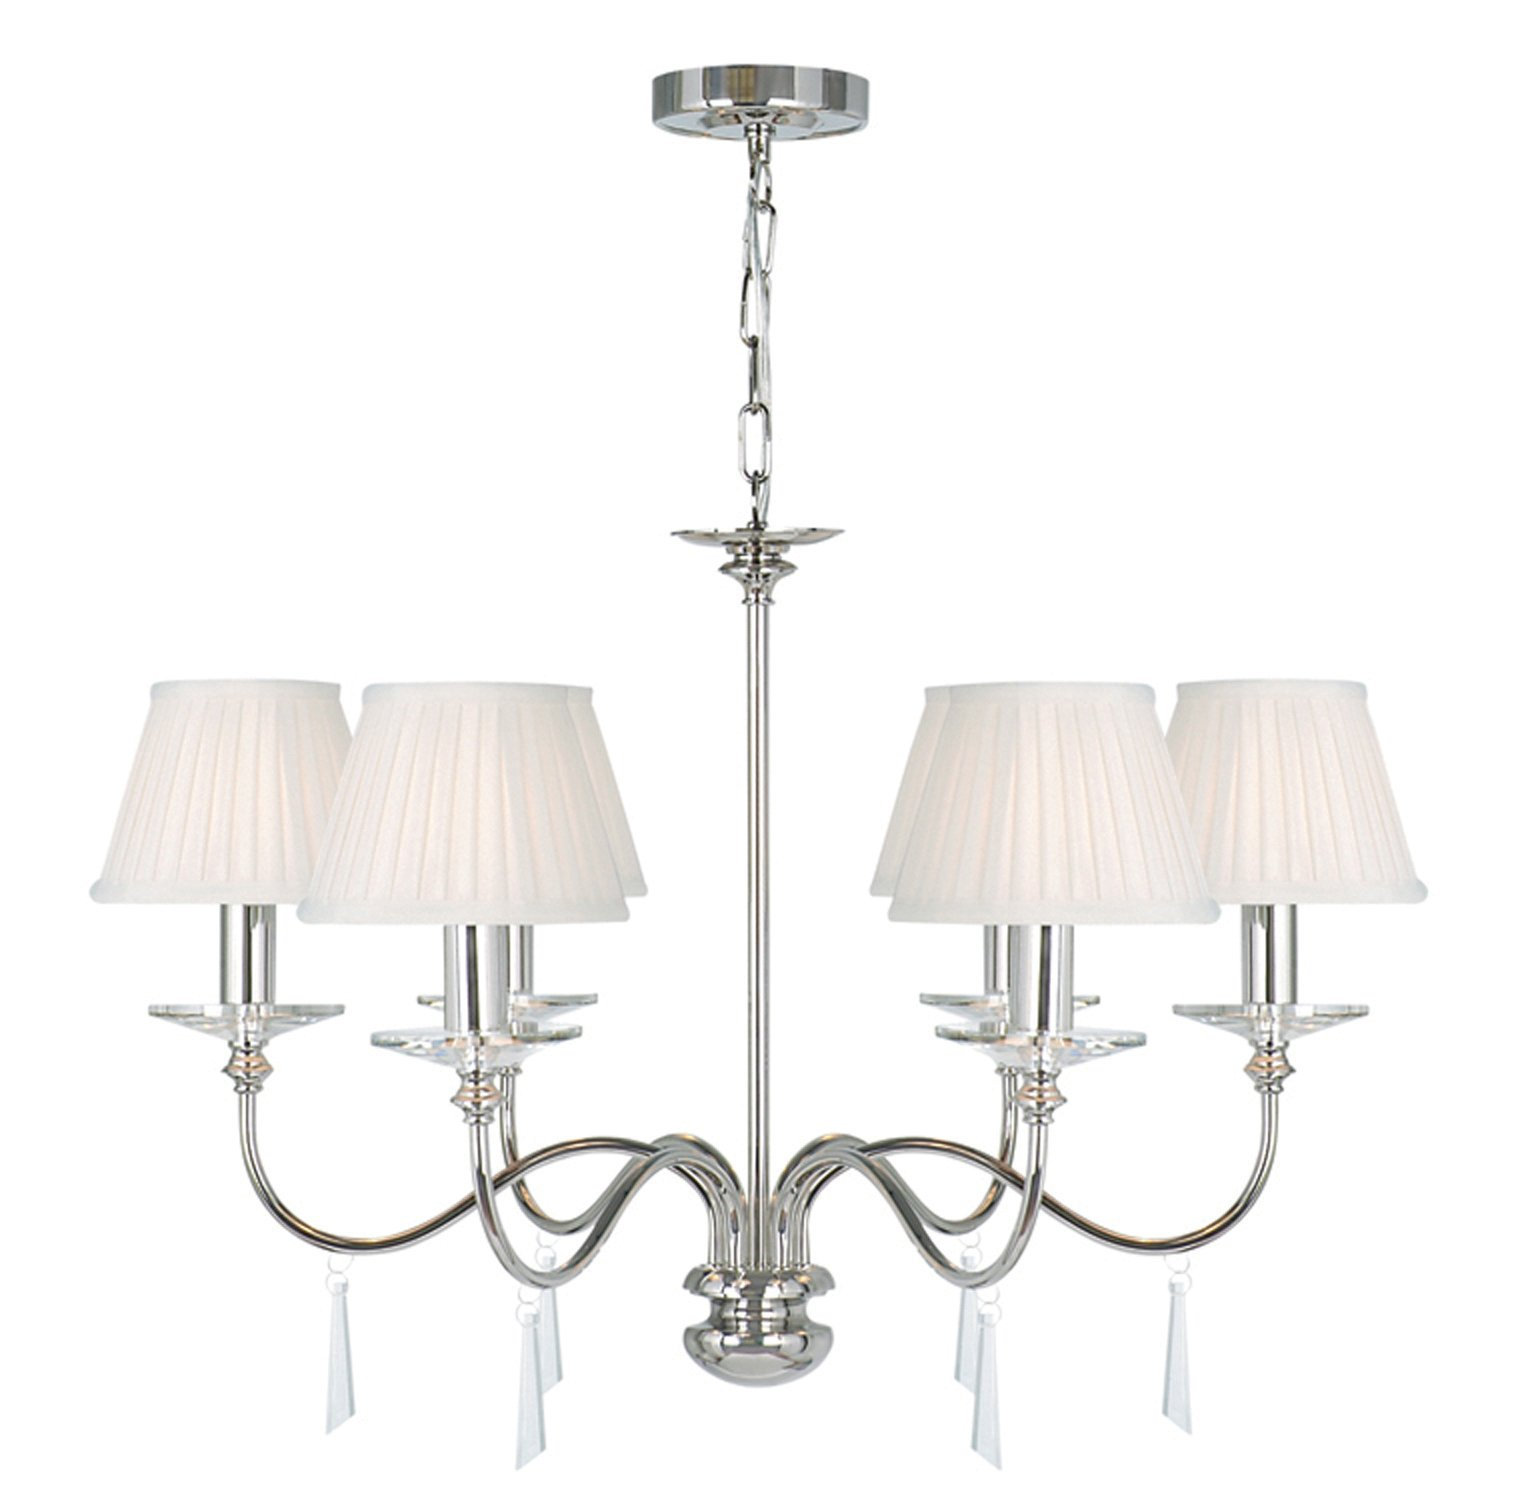 Elstead FP6-PN Finsbury Park 6lt Chandelier, Shades not Included in Polished Nickel